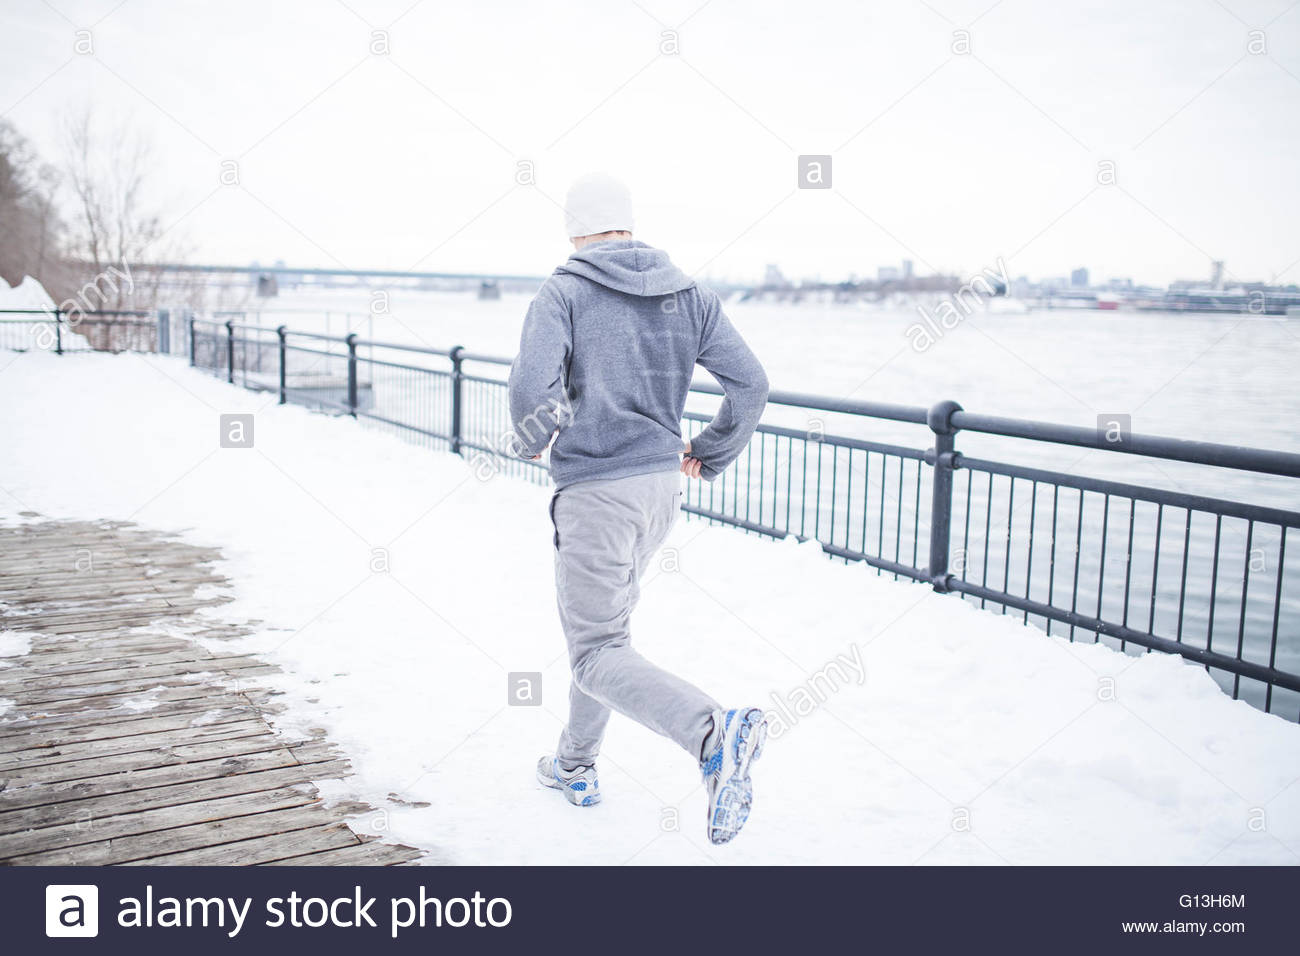 Young man in jogging pants working out along water, Montreal, Quebec, Canada - Stock Image